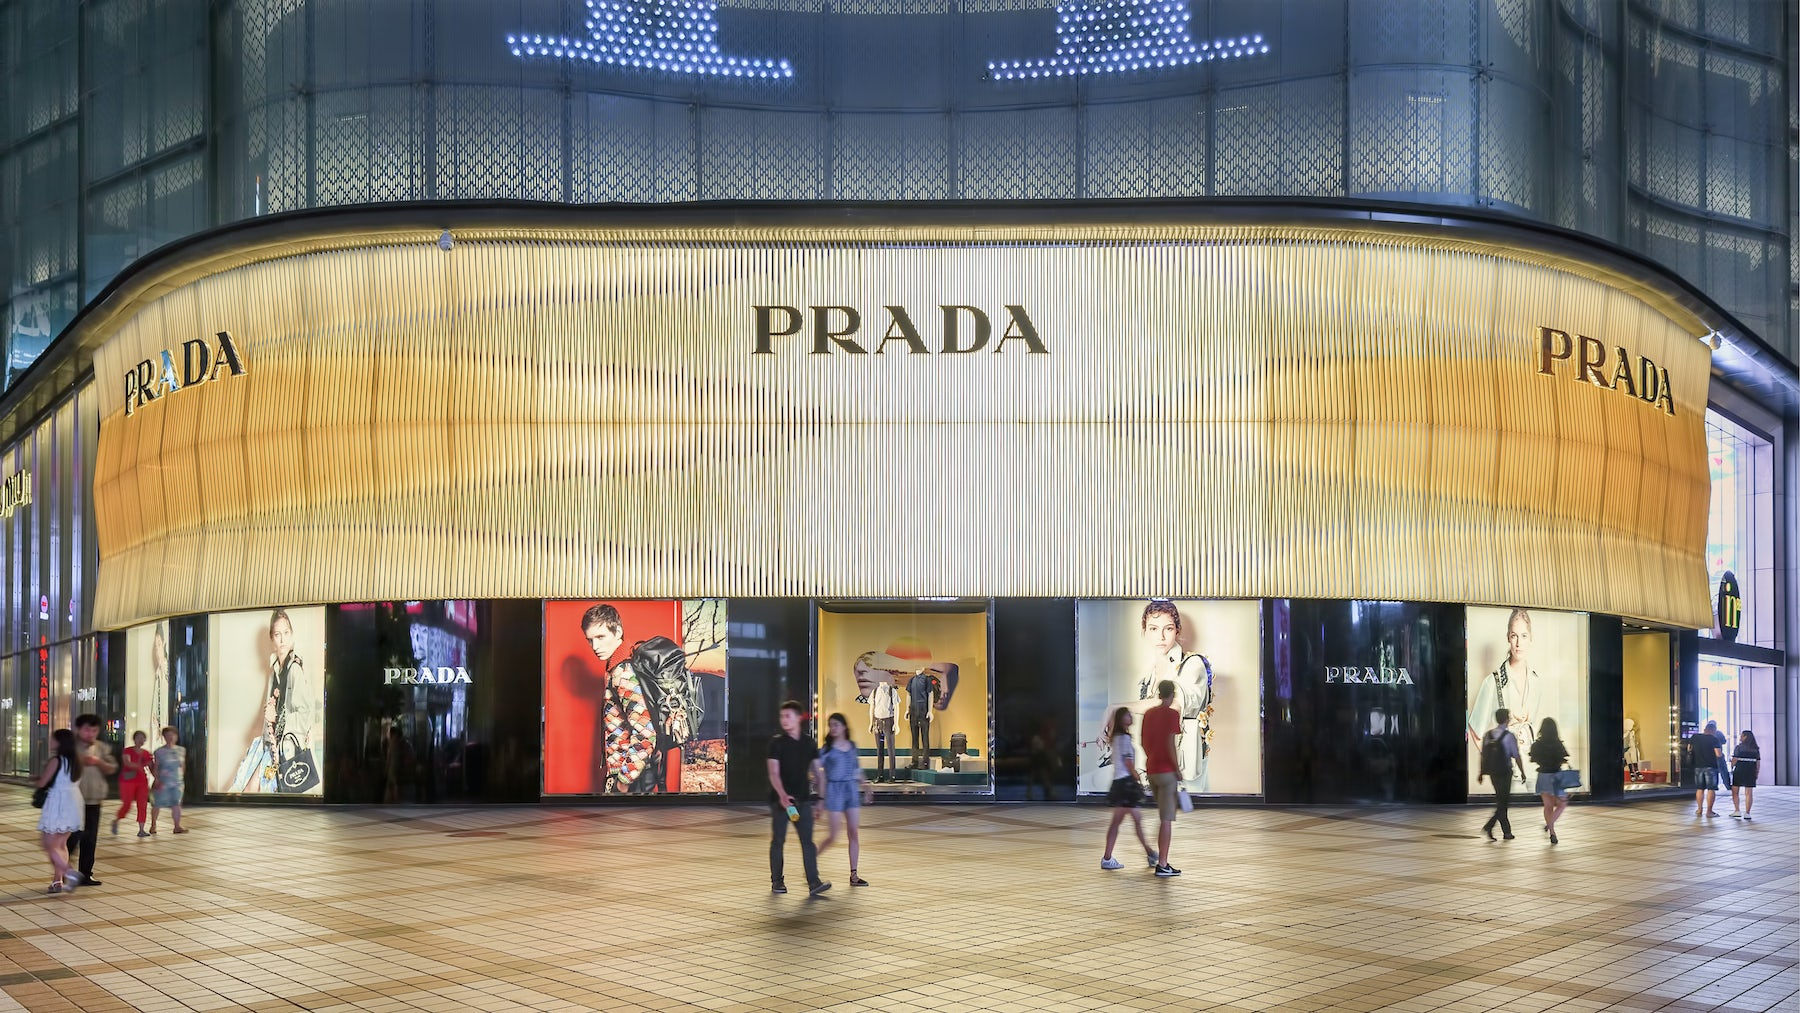 Prada flagship store in Beijing | Source: Shutterstock